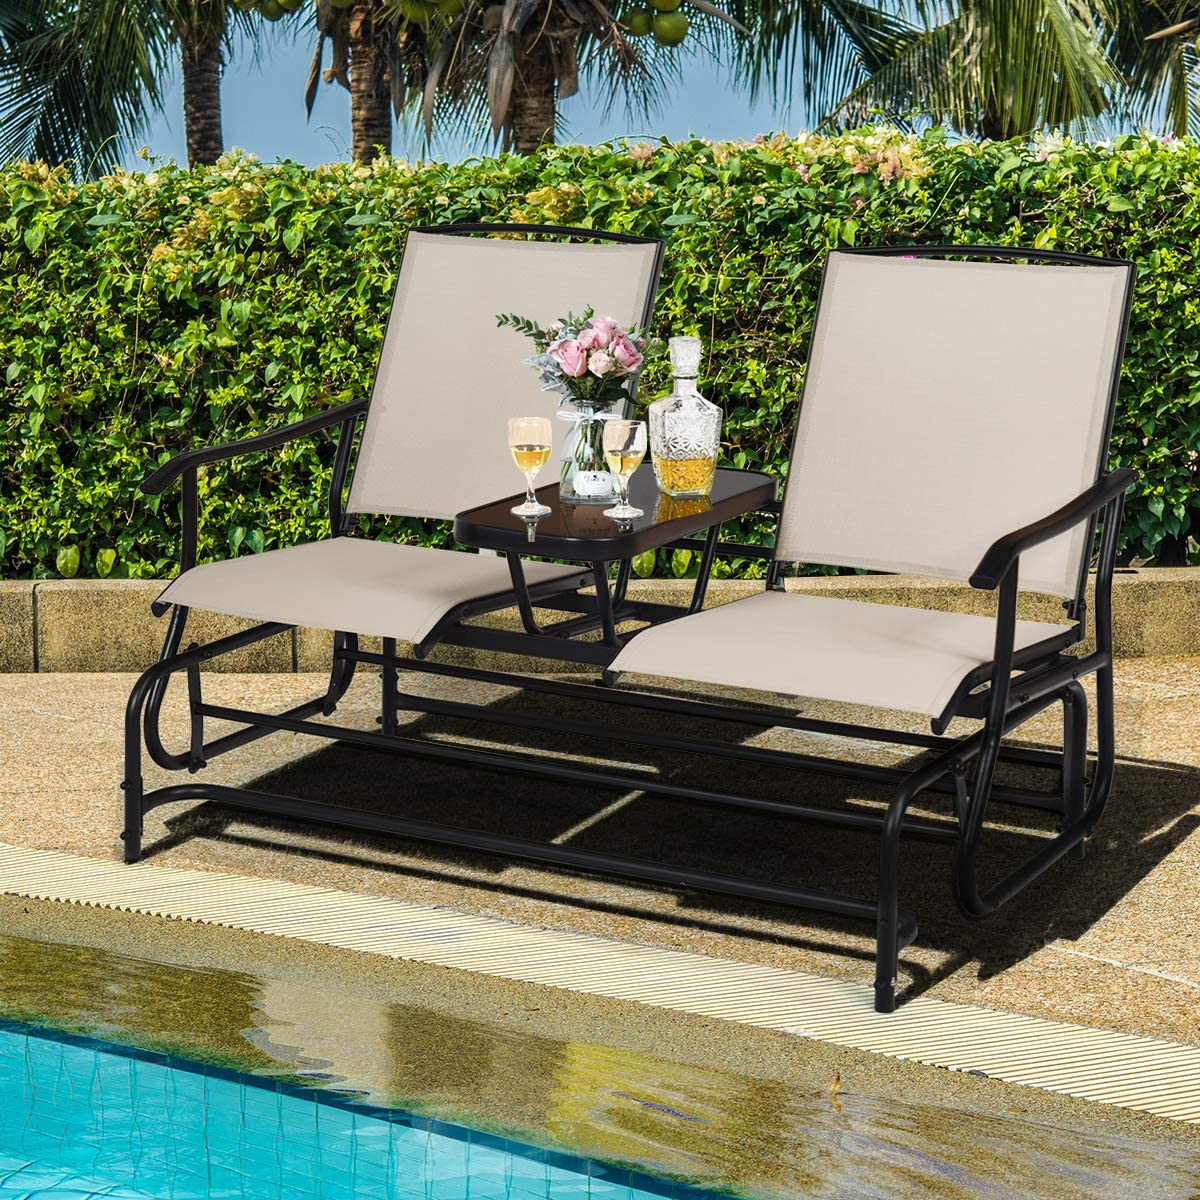 2-Person Outdoor Glider Chair with Center Table Double Rocking Chair Loveseat for Patio Backyard Poolside Lawn Safstar Patio Glider Bench Beige